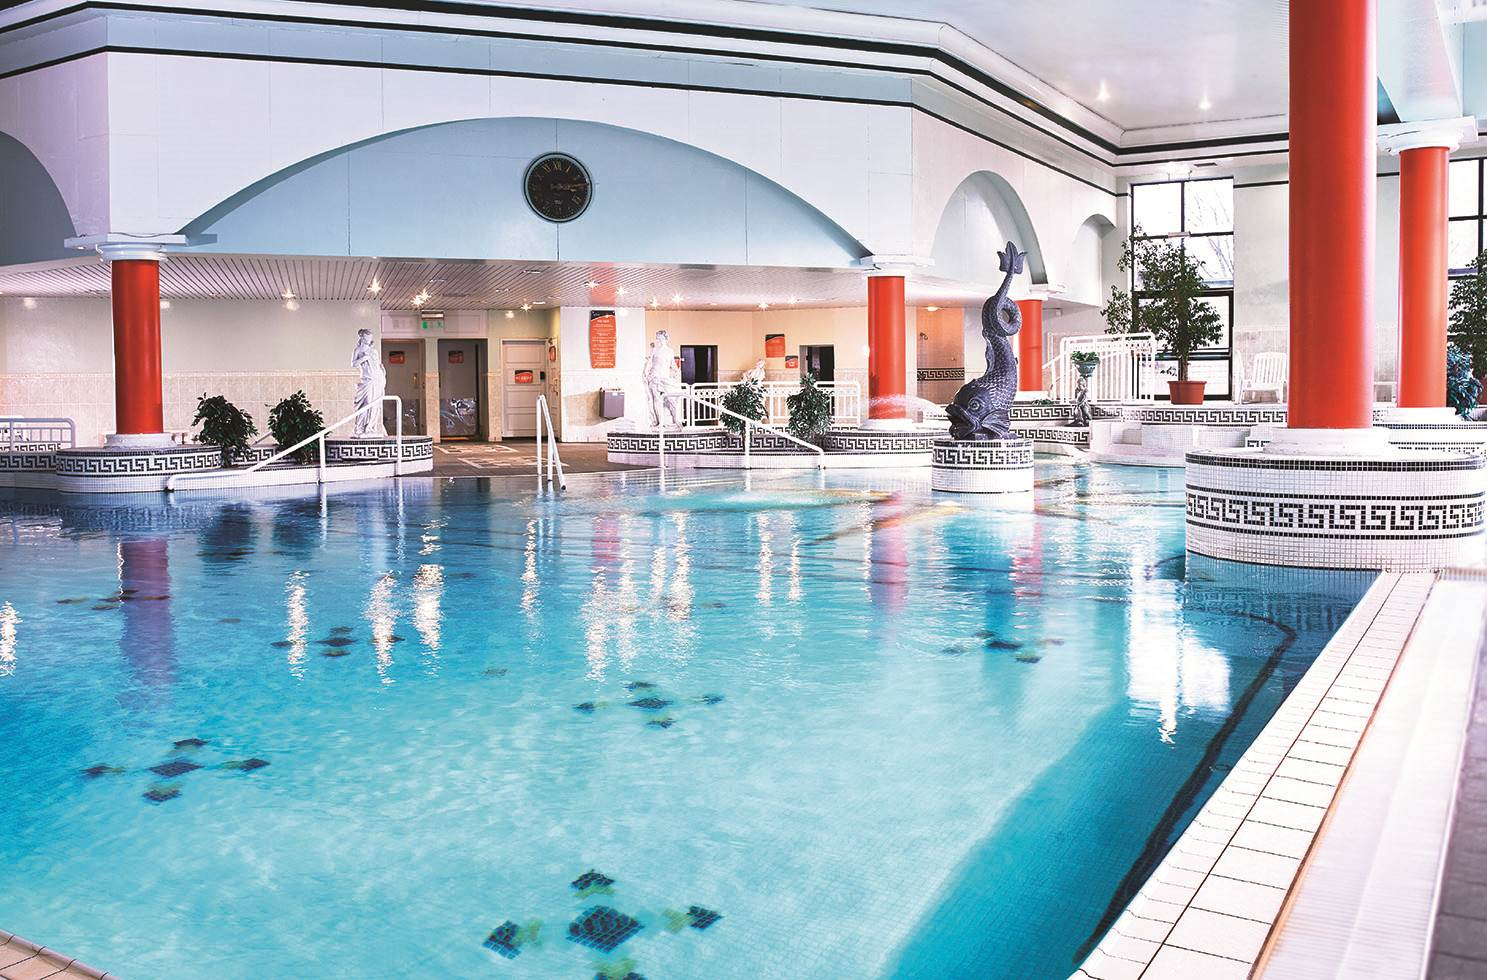 The Connacht Hotel Pool in Galway